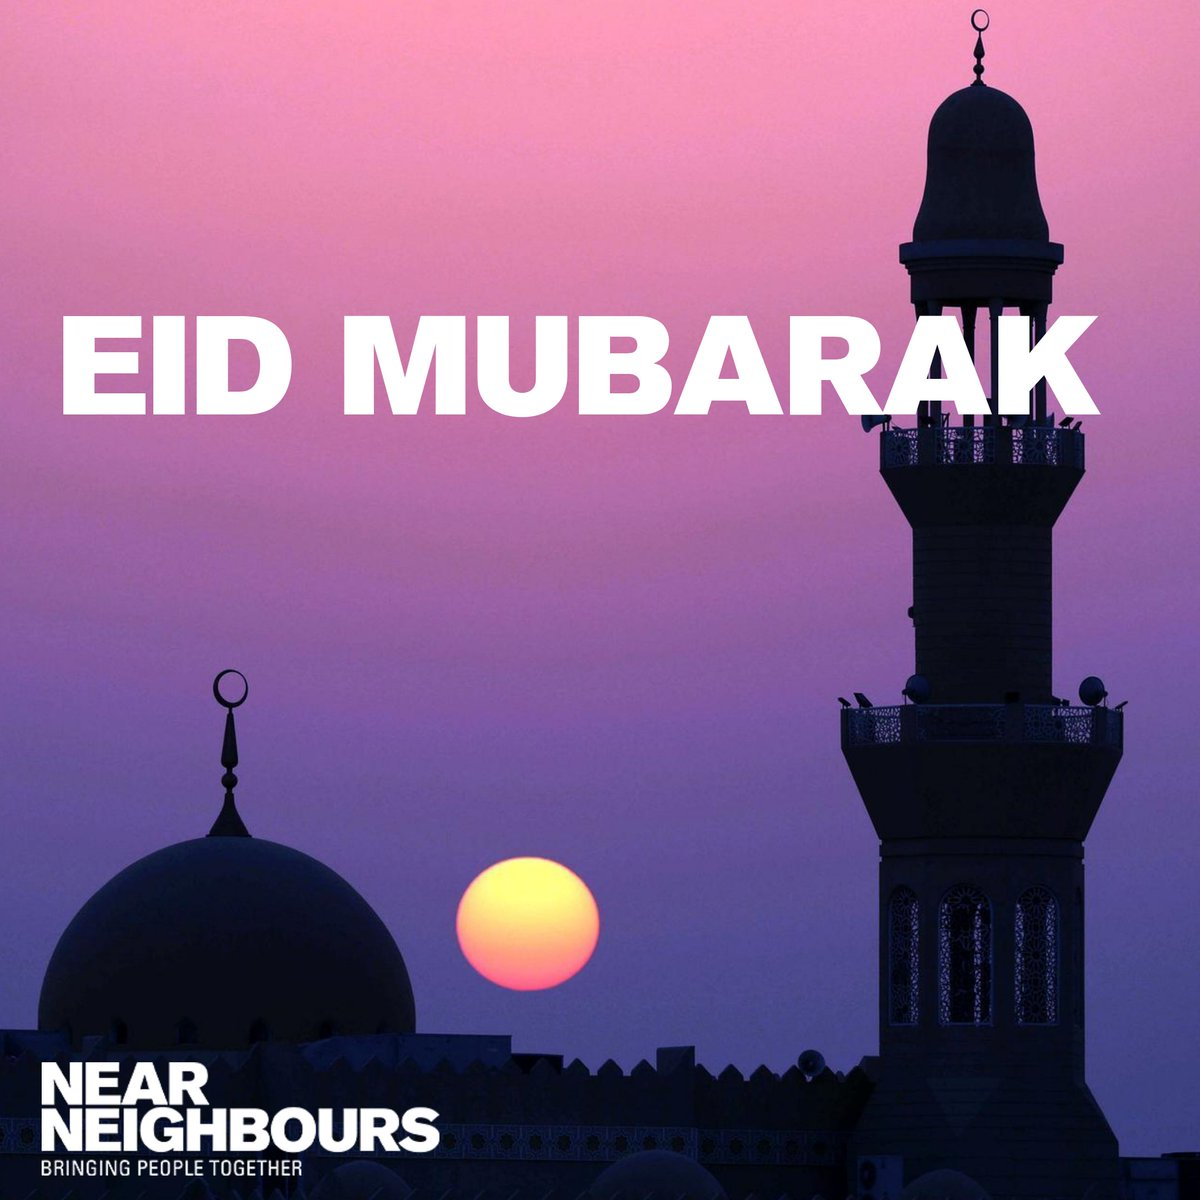 We wish a healthy and peaceful #Eid-al-fitr to all our Muslim colleagues and friends. #Covid_19 makes impossible to celebrate the end of #RamadanAtHome with the community at the #mosque, but we really hope all families can have happiness and prosperity in this blessed day. https://t.co/RHsDFLB5rA